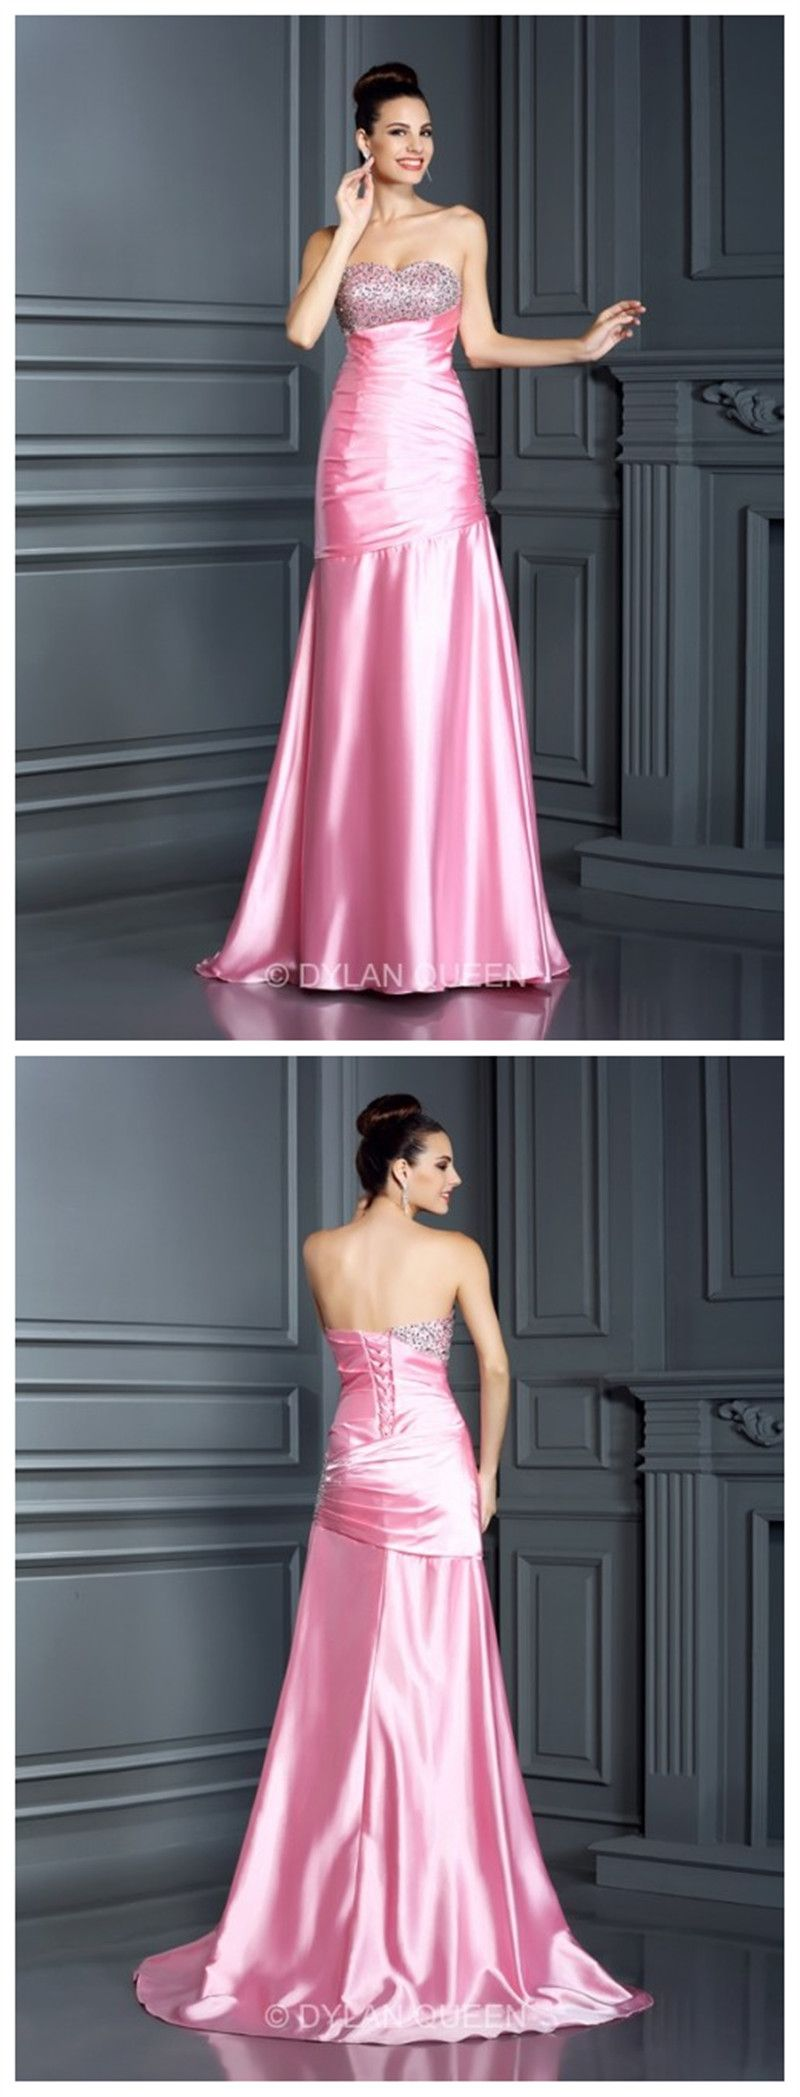 dylanqueen Charming strapless &pink long evening dress for party ...